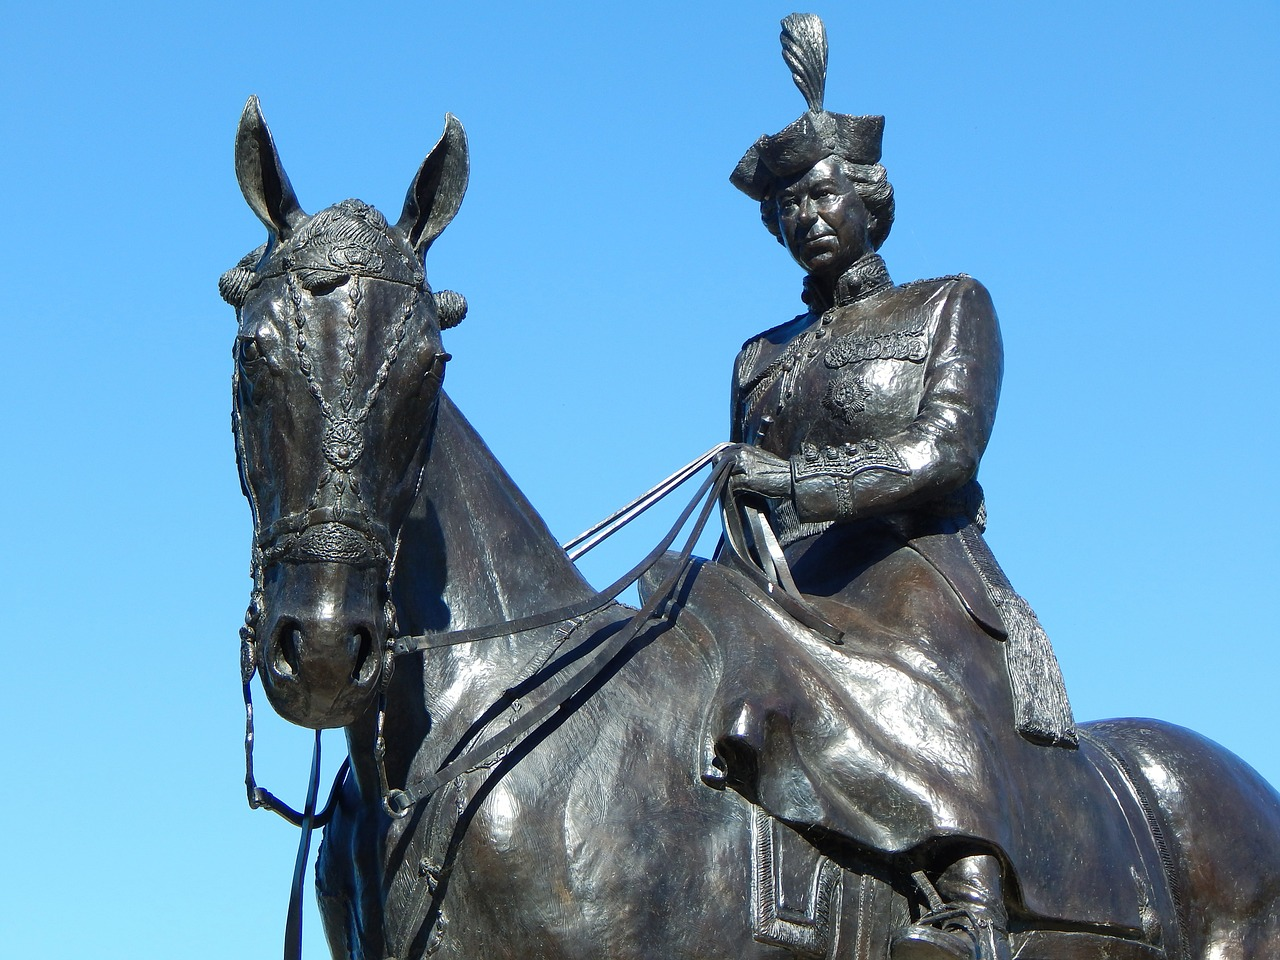 Queen Elizabeth II statue on horseback